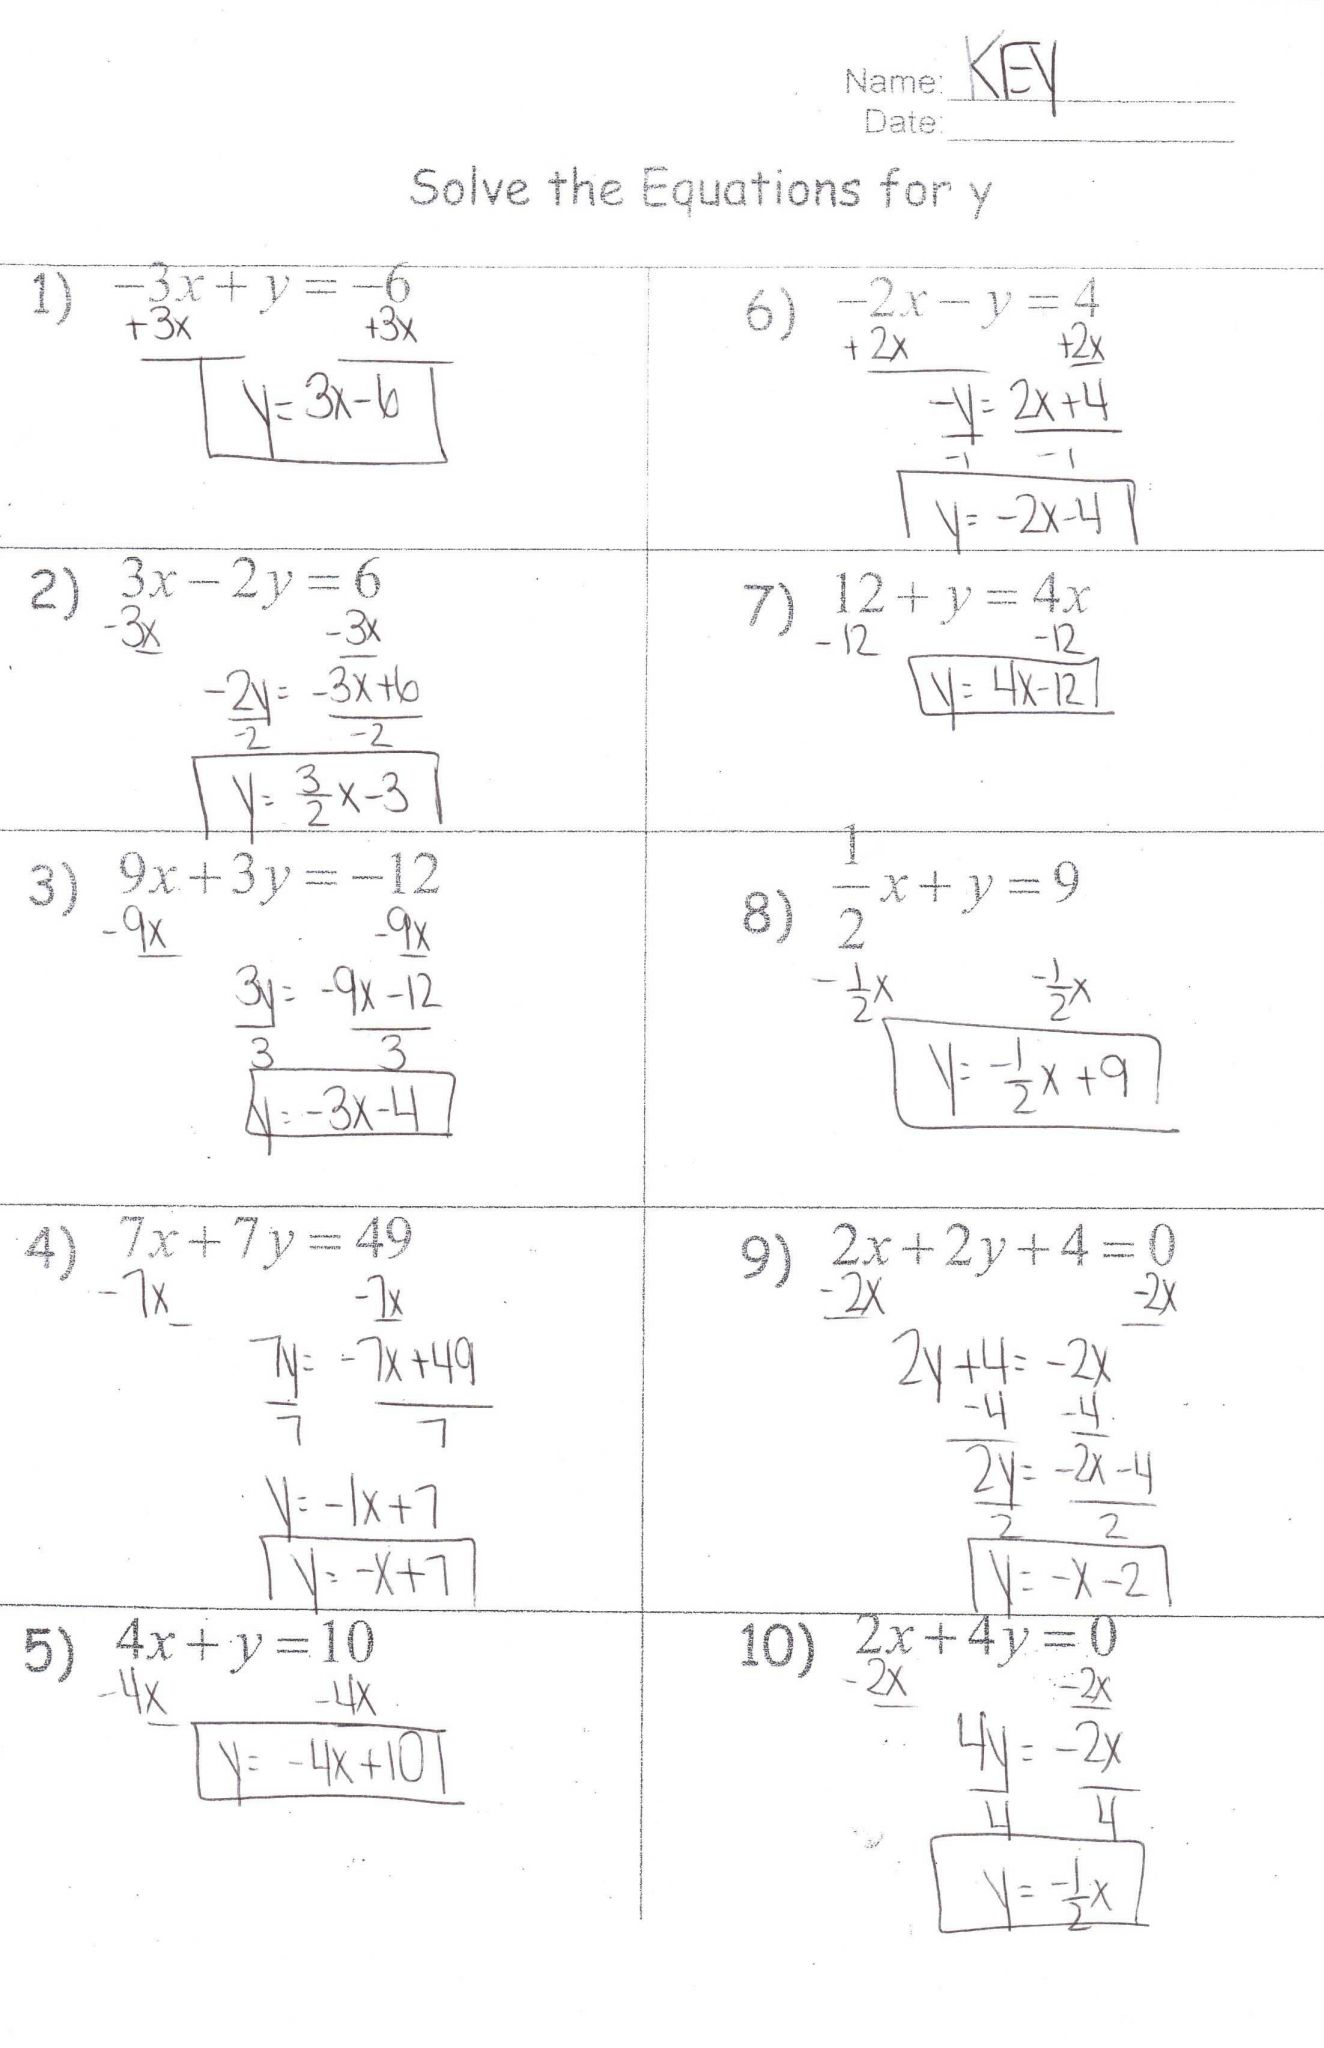 Solving Exponential Equations Worksheet Also Graphing Linear Inequalities Worksheet Doc Lovely 46 Best Coordinate